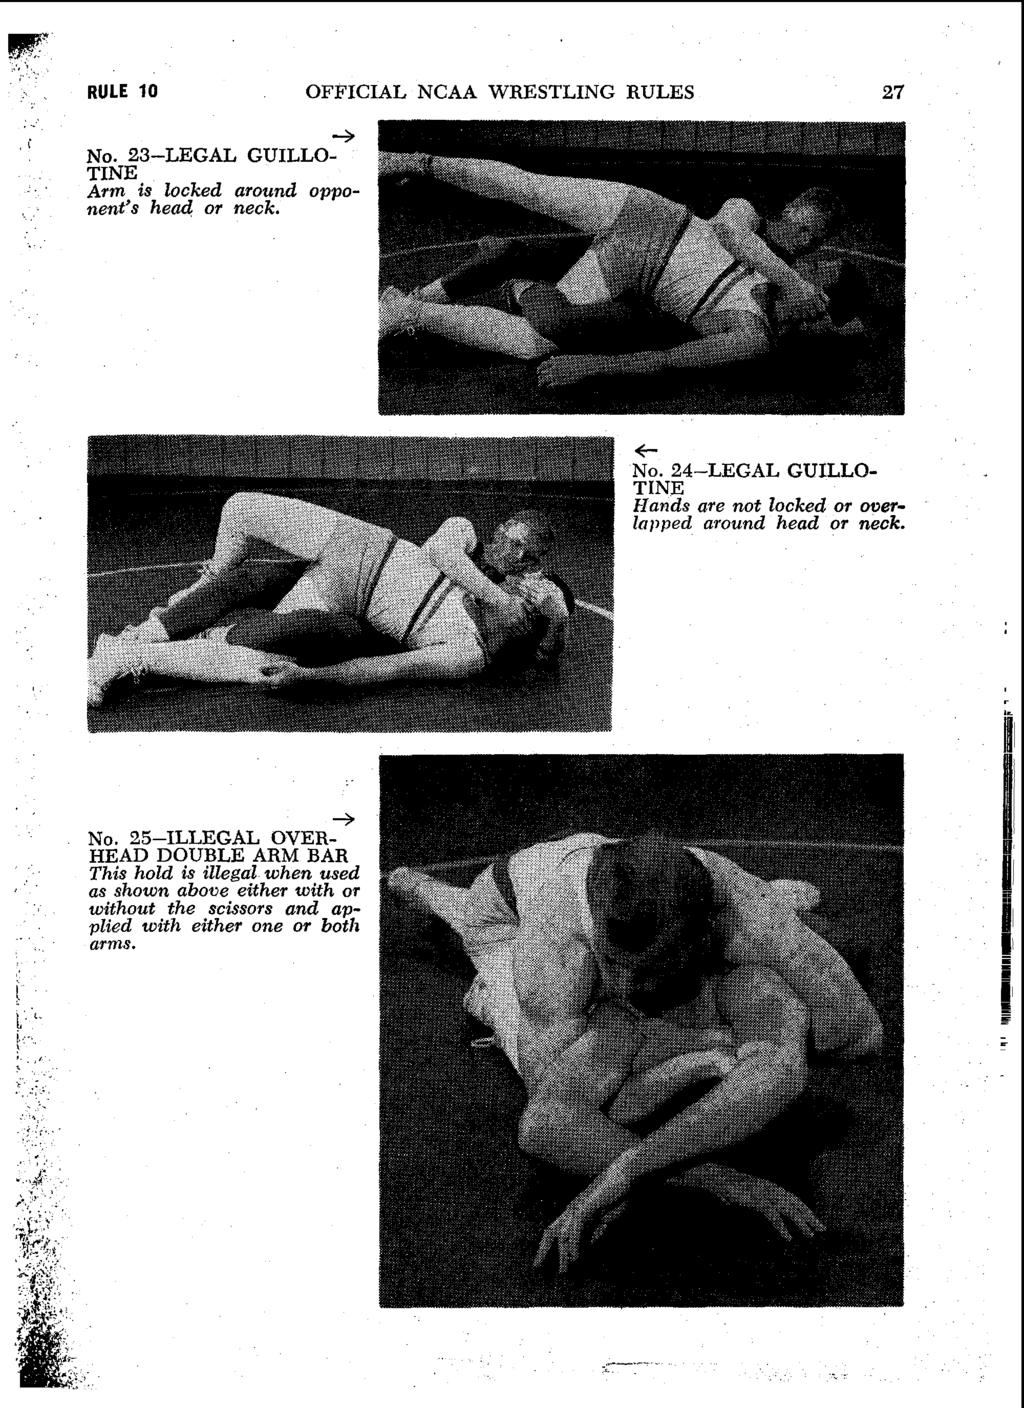 RULE 10 OFFICIAL NCAA WRESTLING RULES 27 + NO.